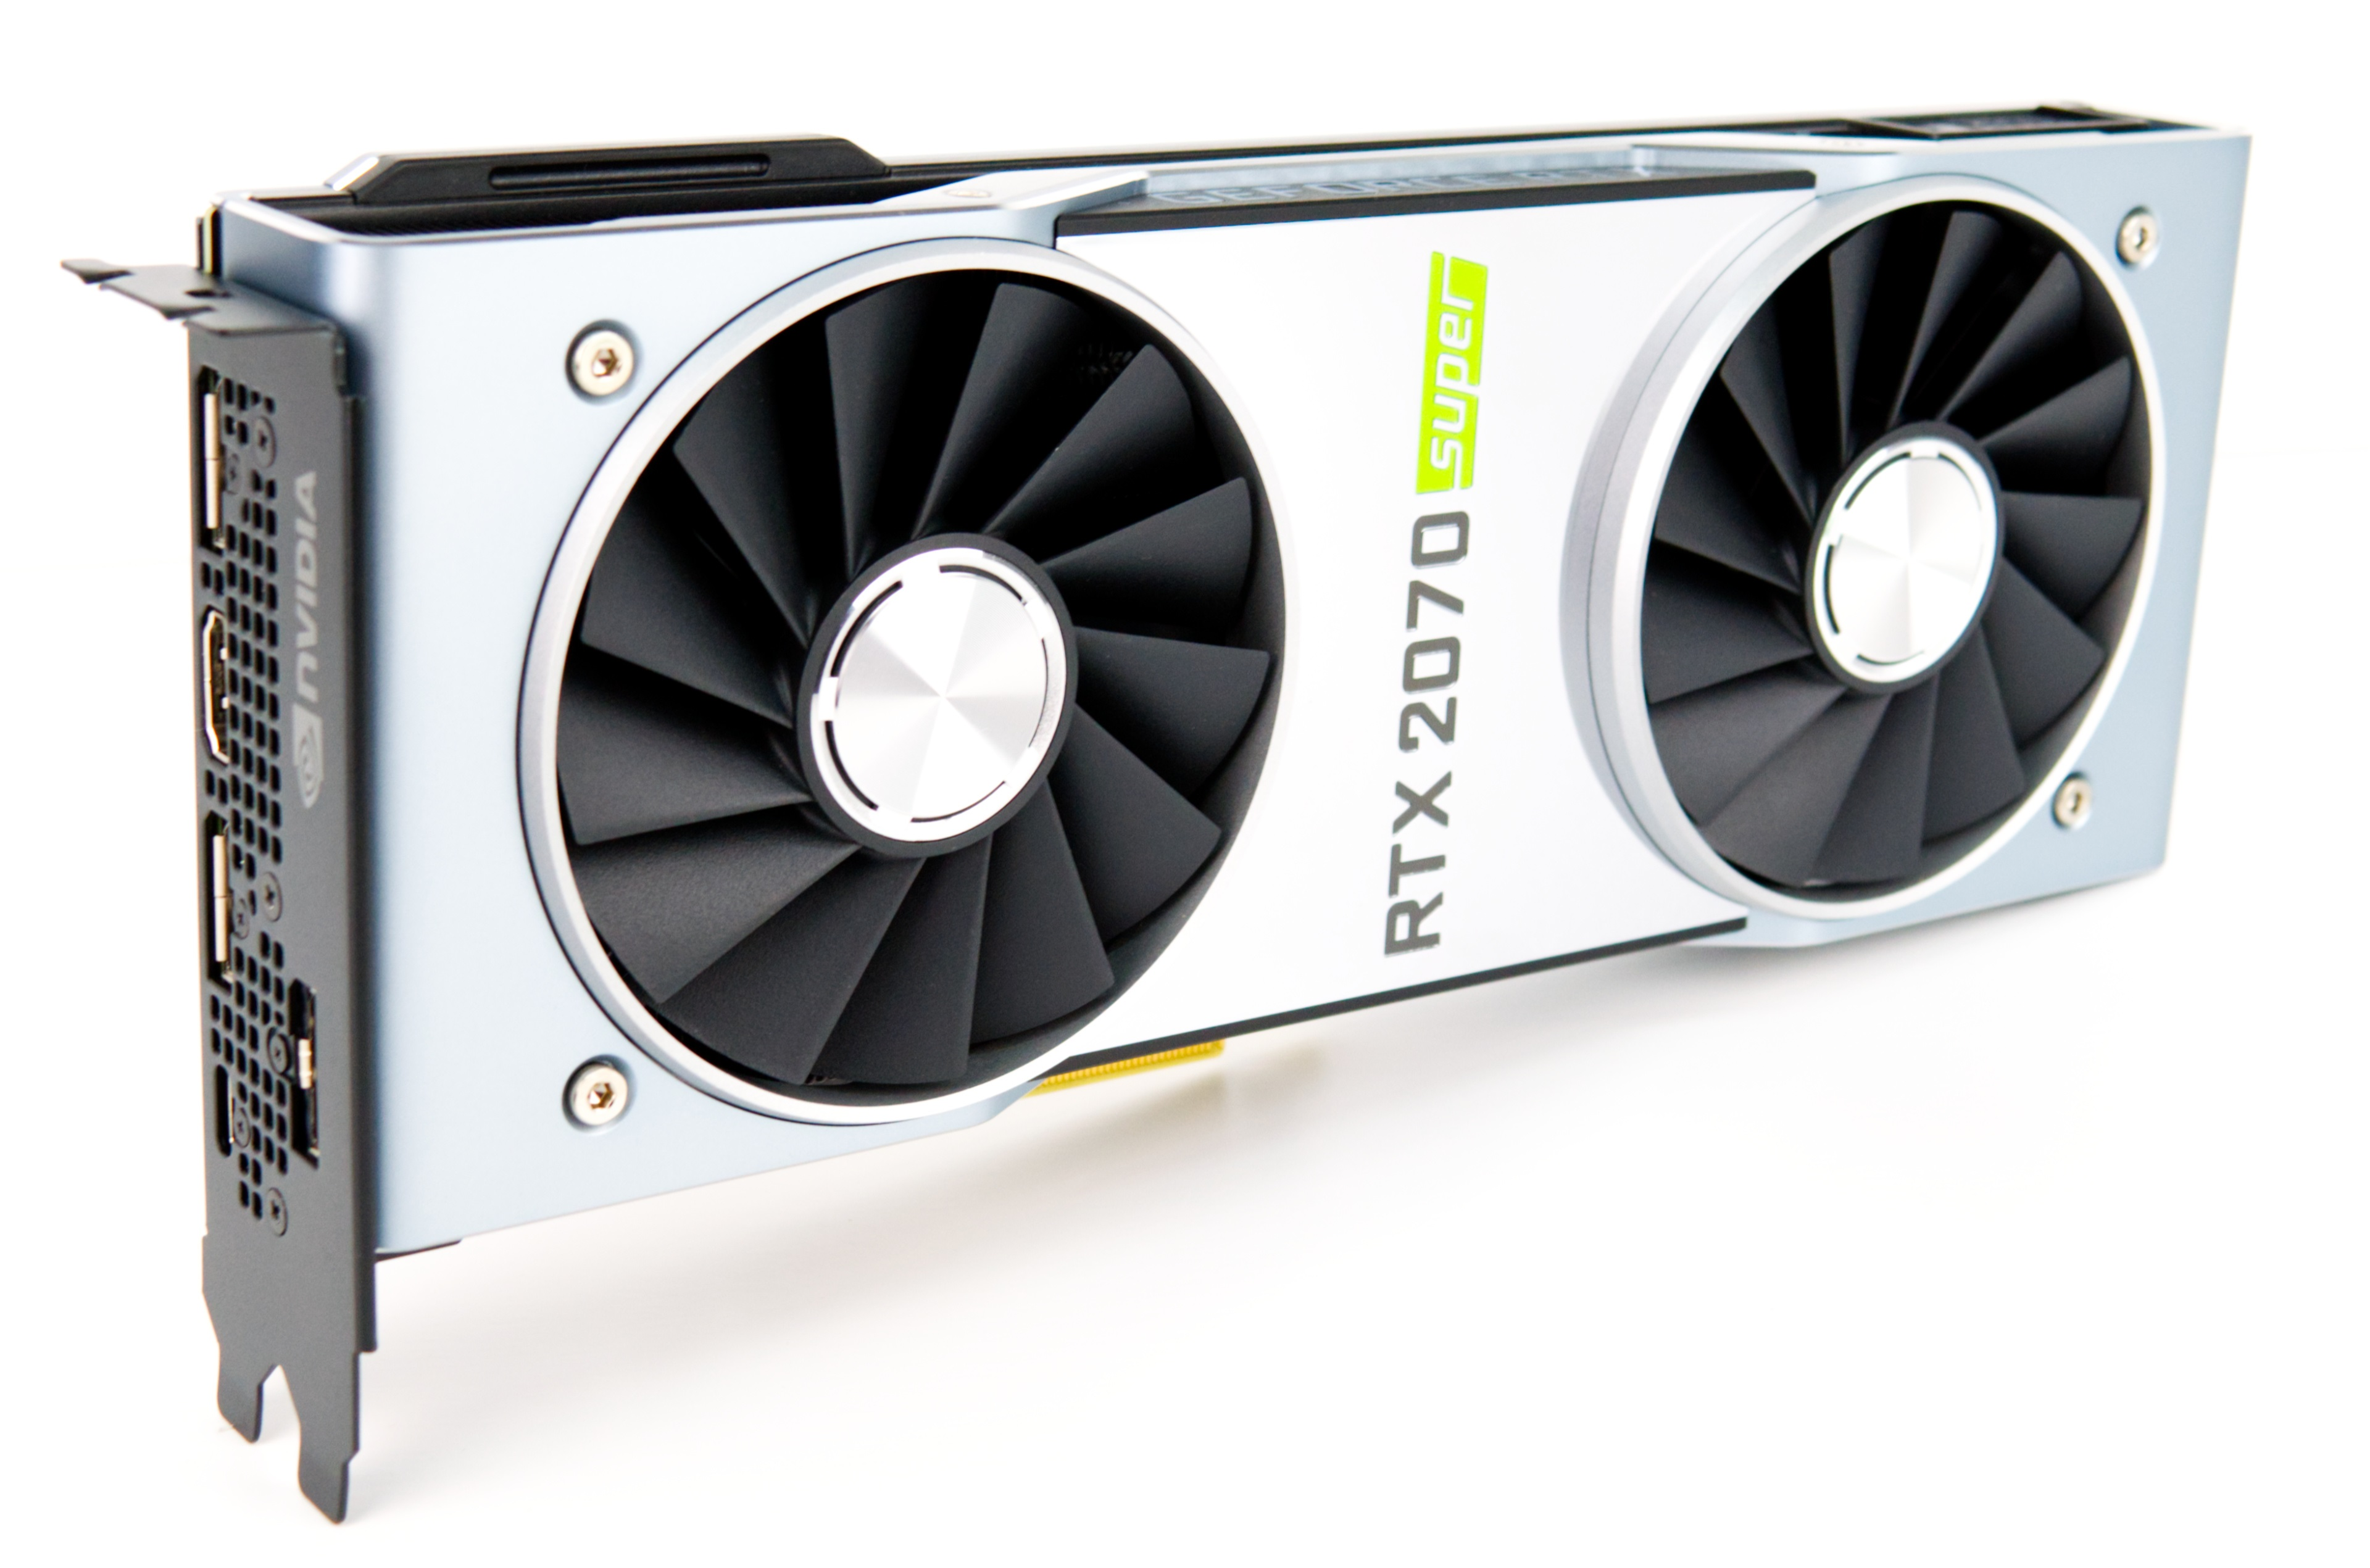 Recensione della GPU Desktop NVIDIA GeForce RTX 2070 SUPER: a breve distanza dalla GeForce RTX 2080